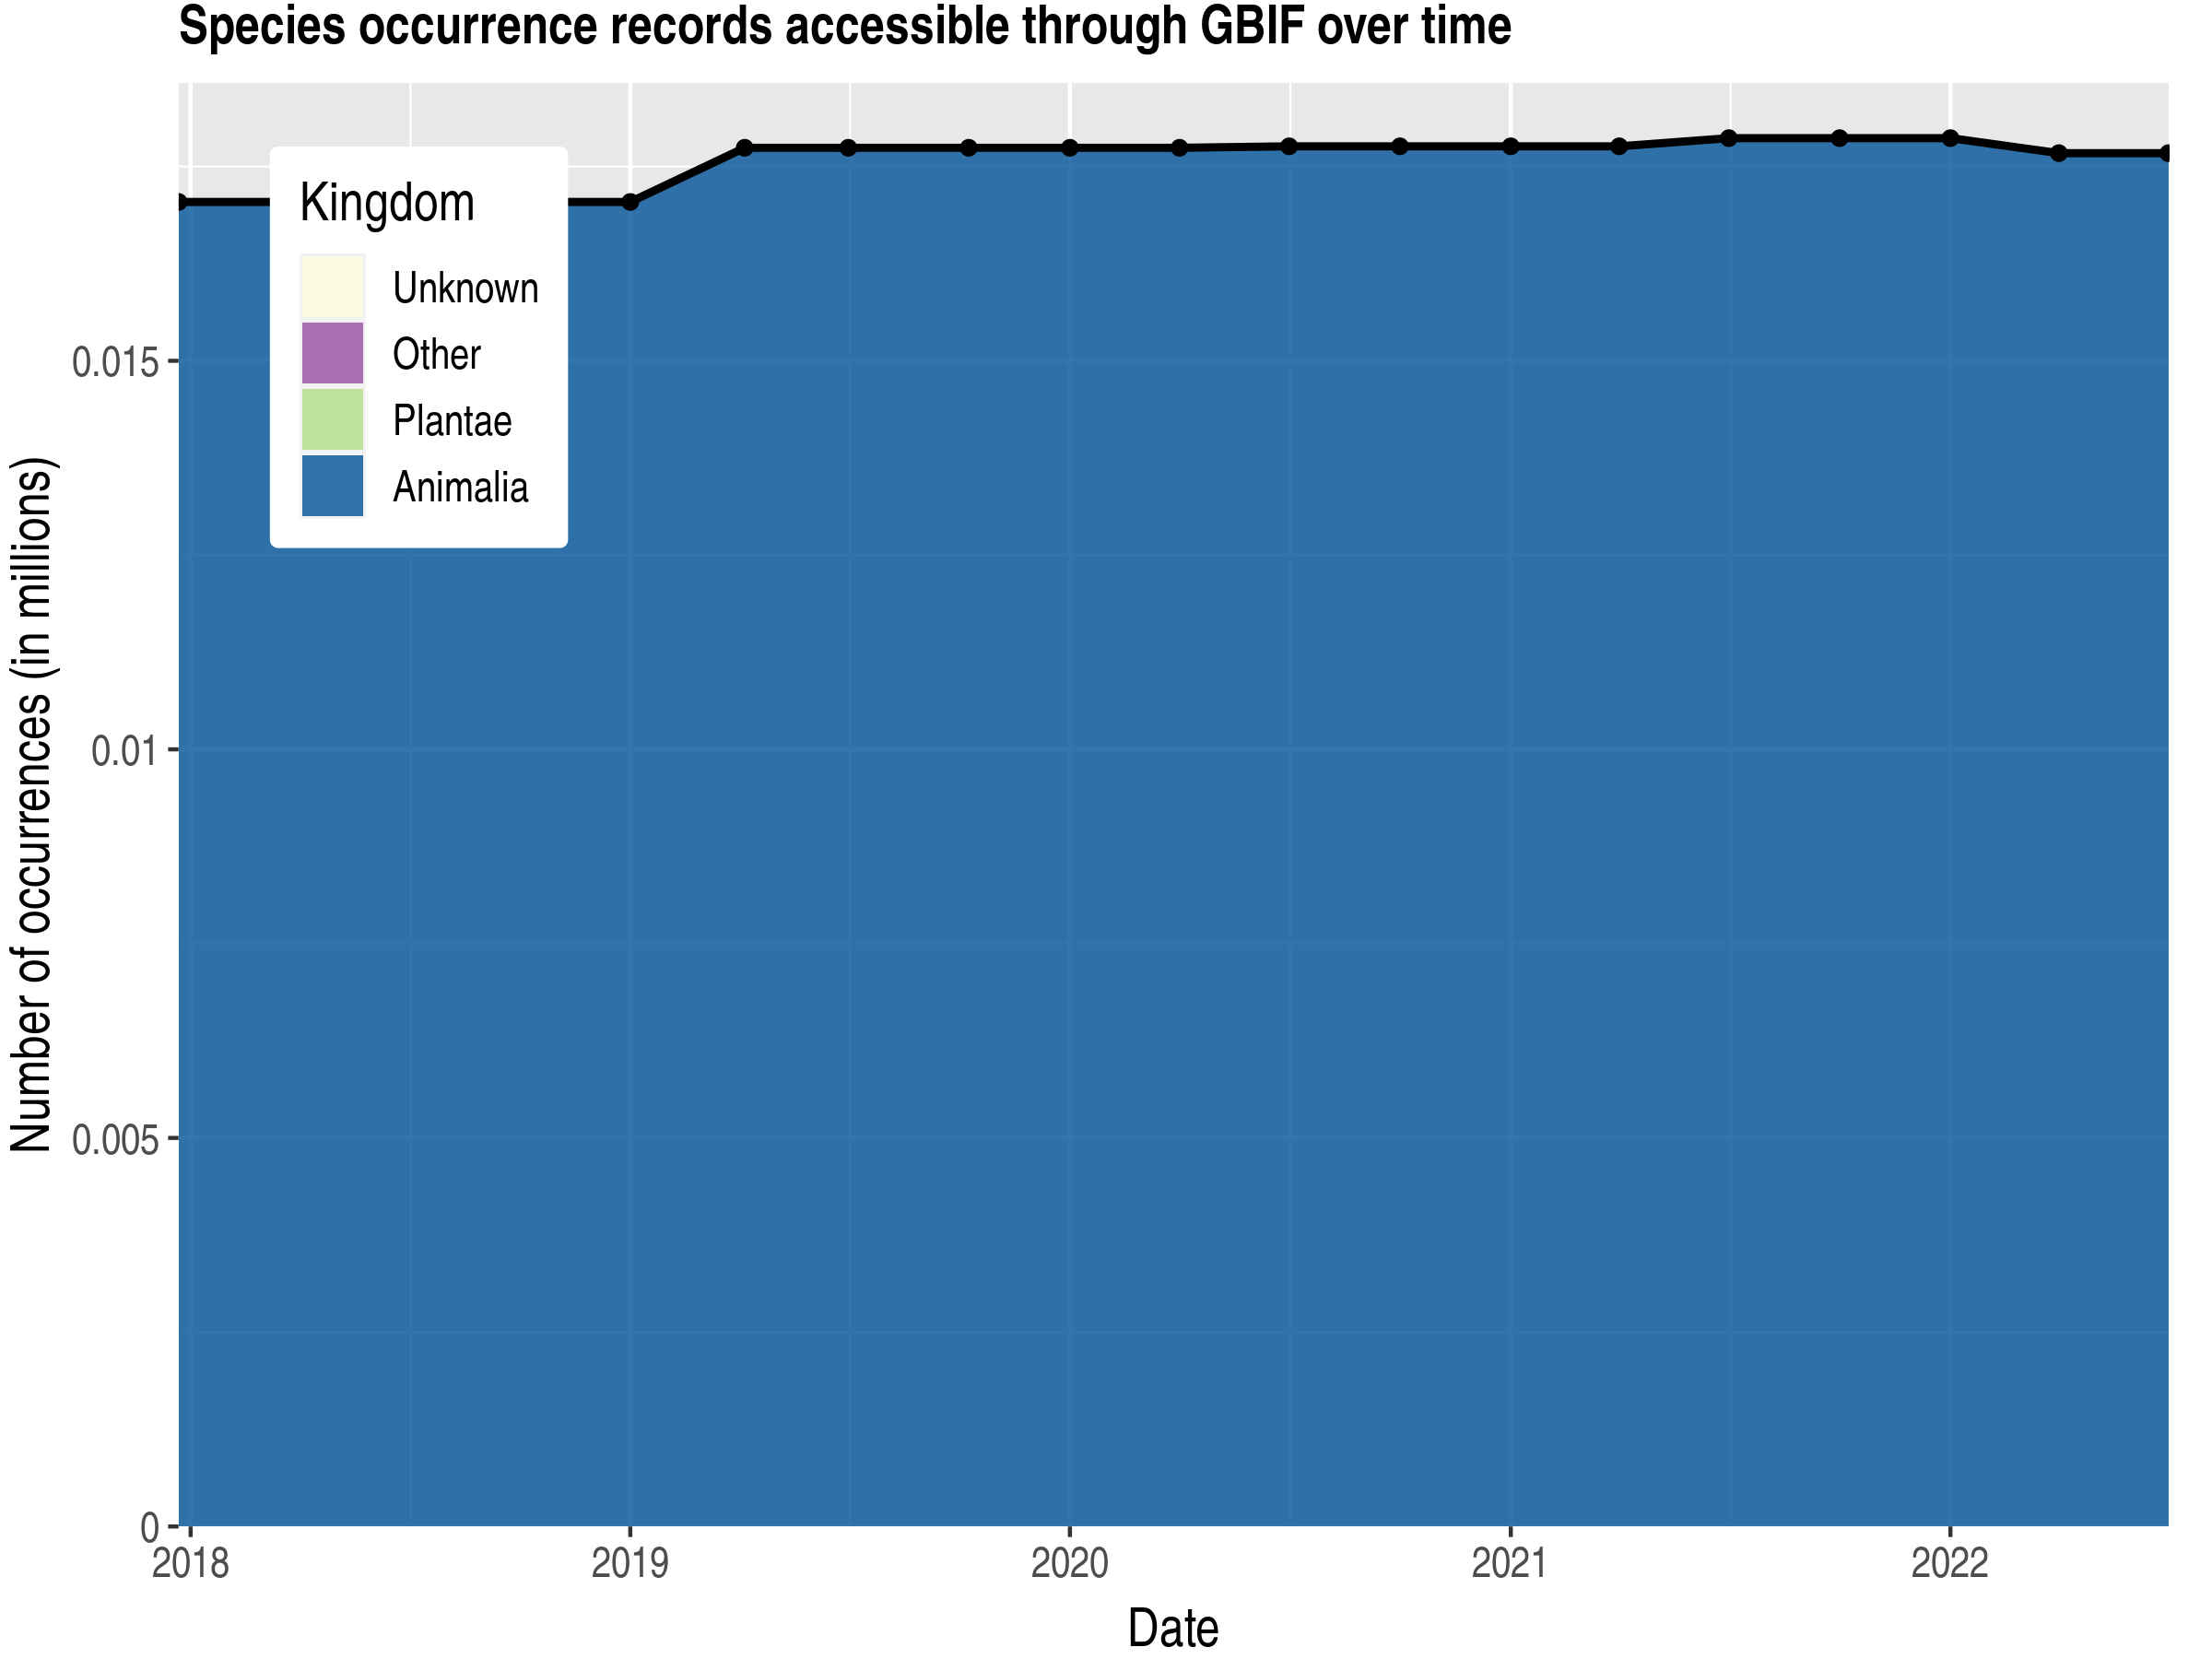 Data trend of records by kingdom published by Libya